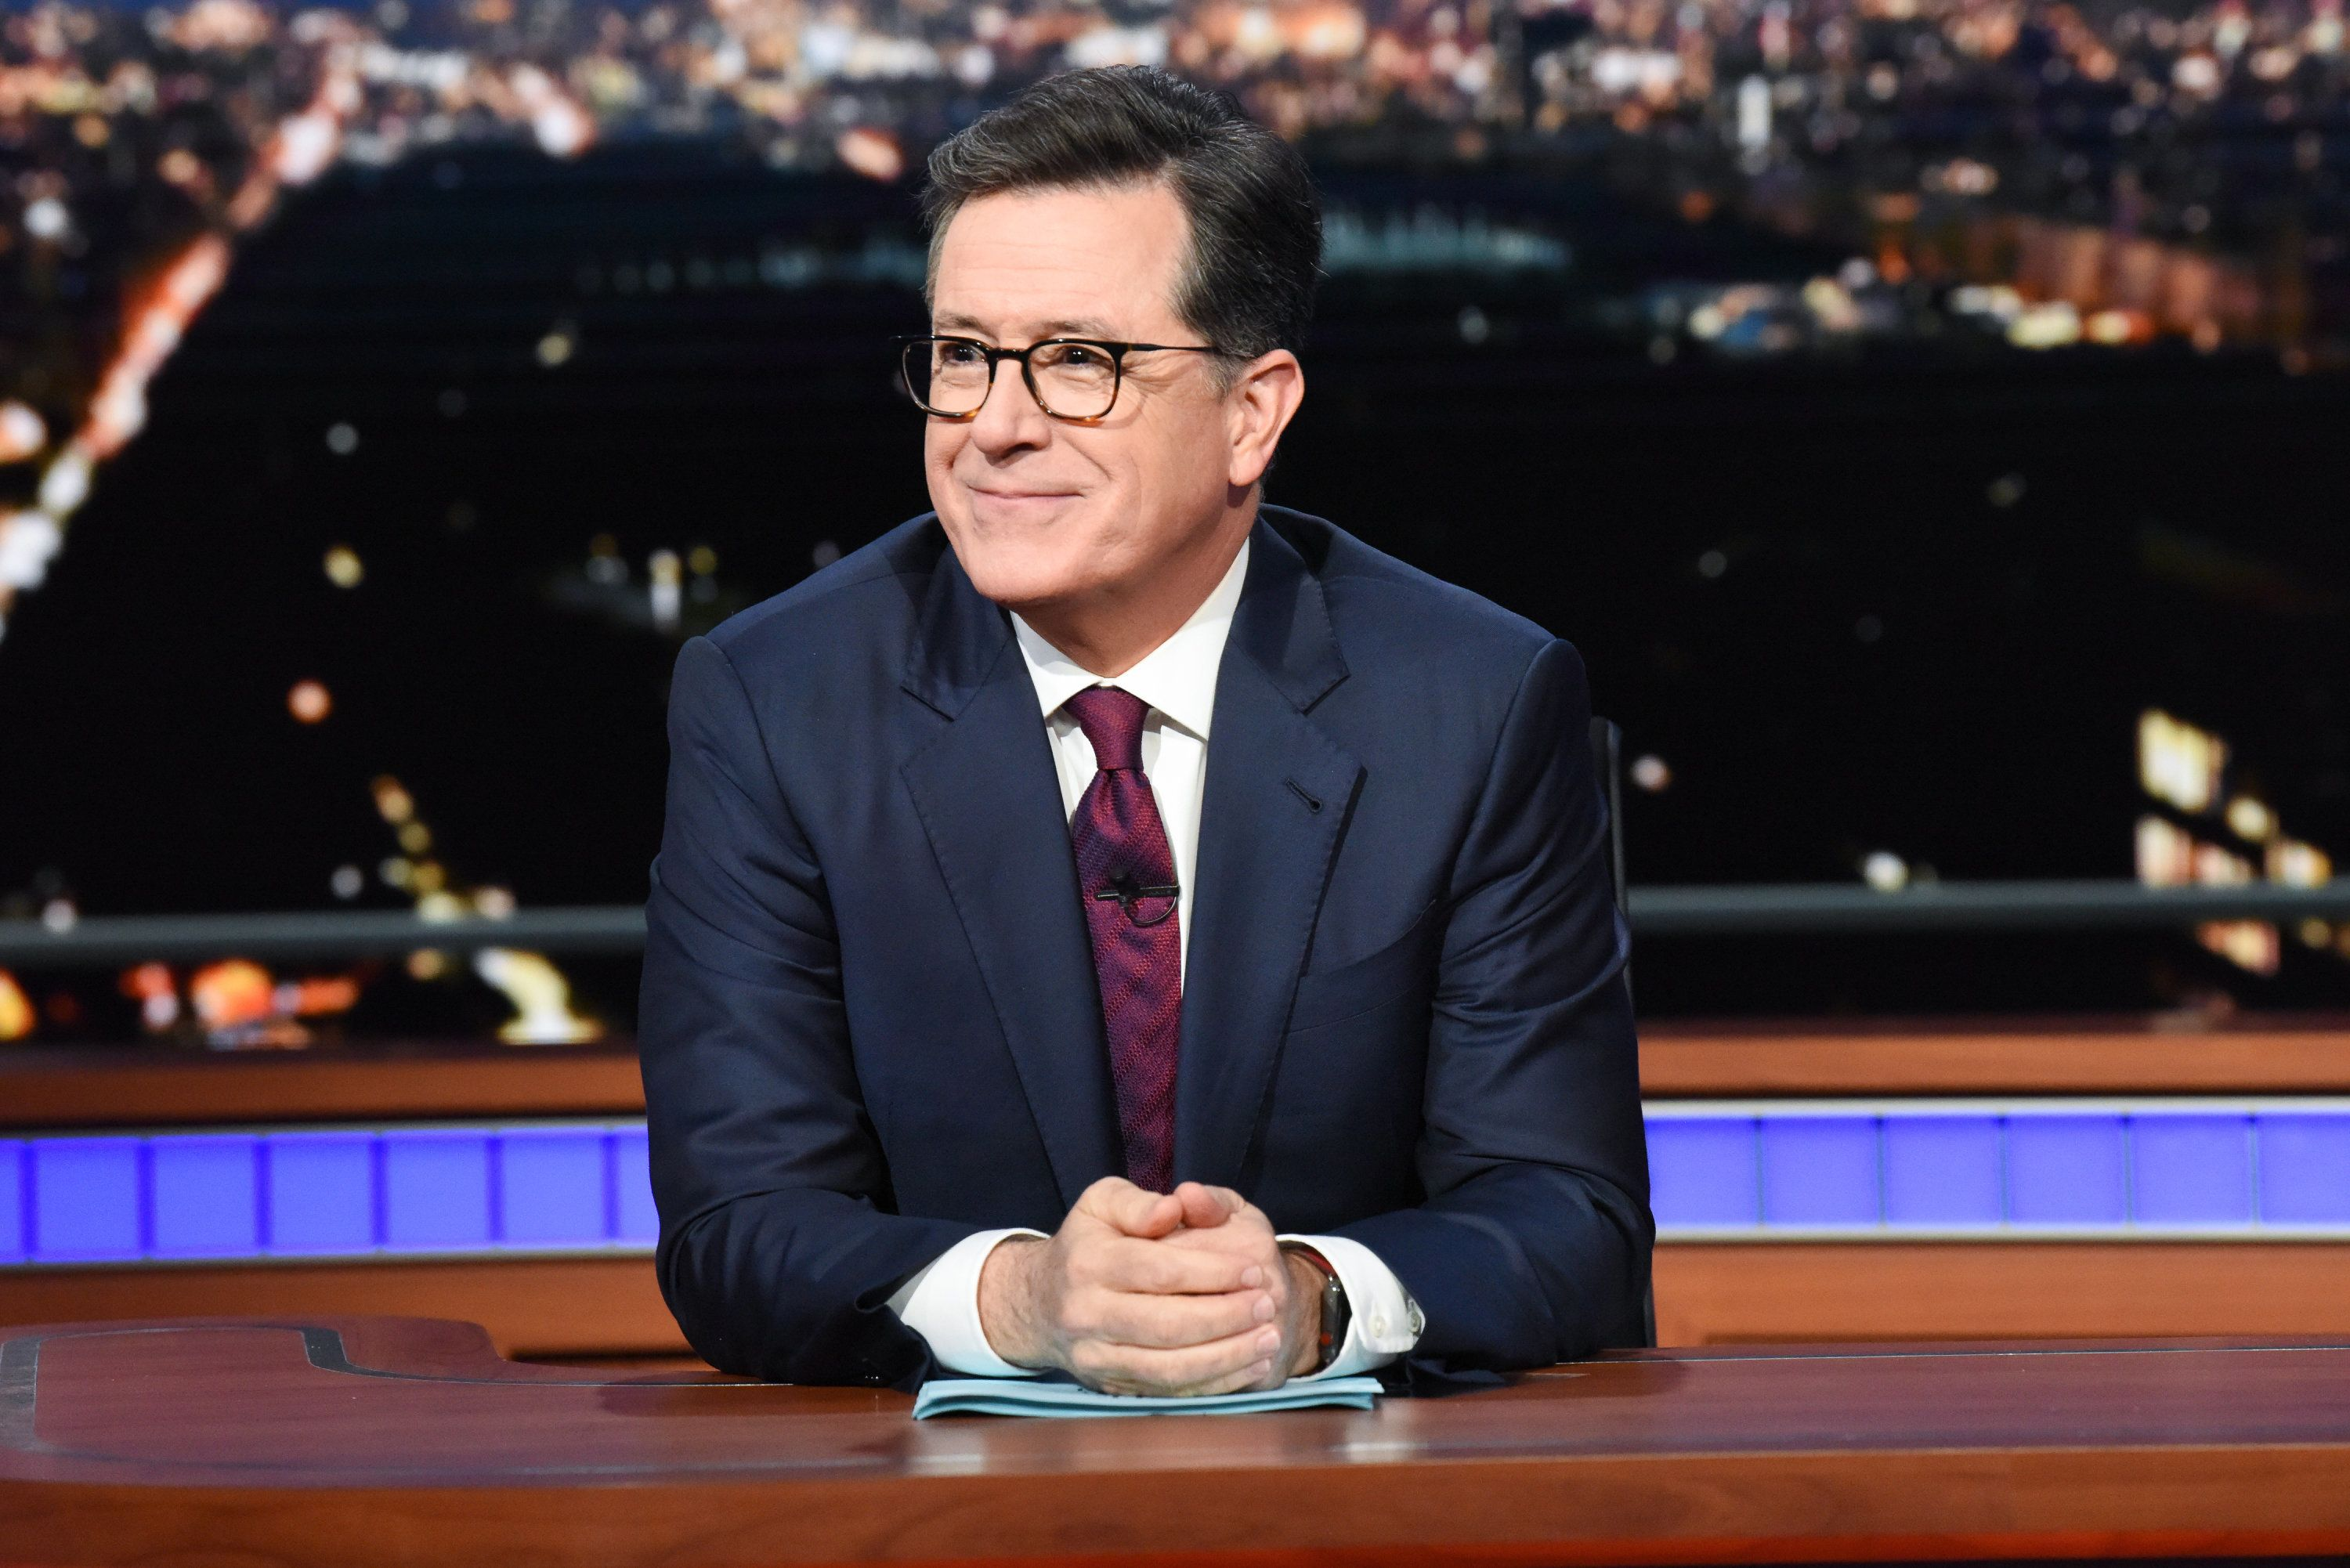 NEW YORK - MAY 22: The Late Show with Stephen Colbert during Tuesday's May 22, 2018 show. (Photo by Scott Kowalchyk/CBS via Getty Images)